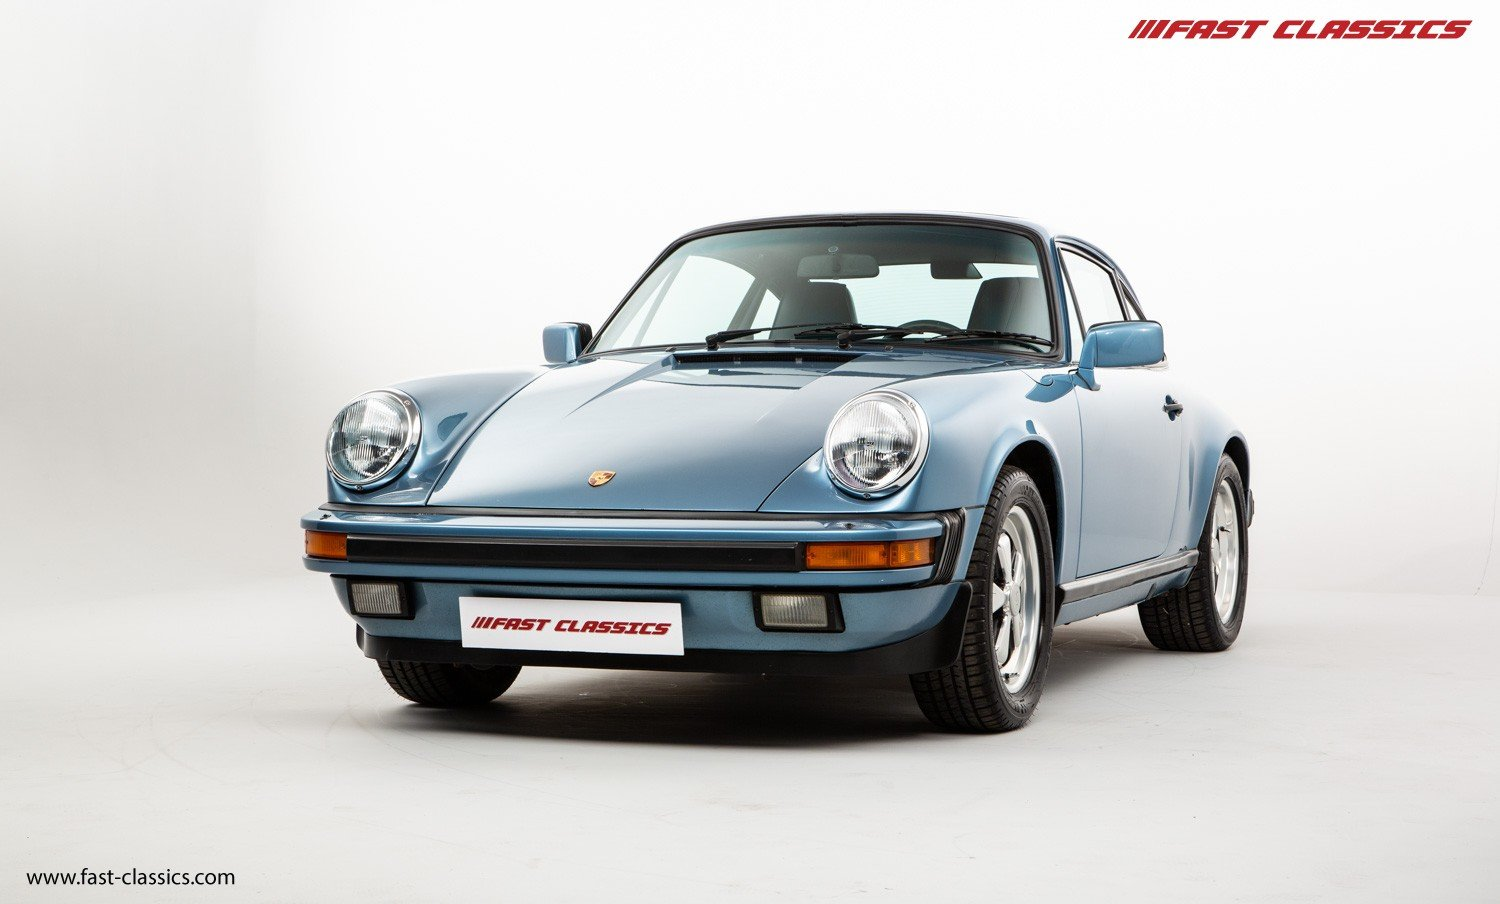 1986 PORSCHE 911 CARRERA 3.2 // IRIS BLUE WITH BLUE LEATHER  For Sale (picture 3 of 6)